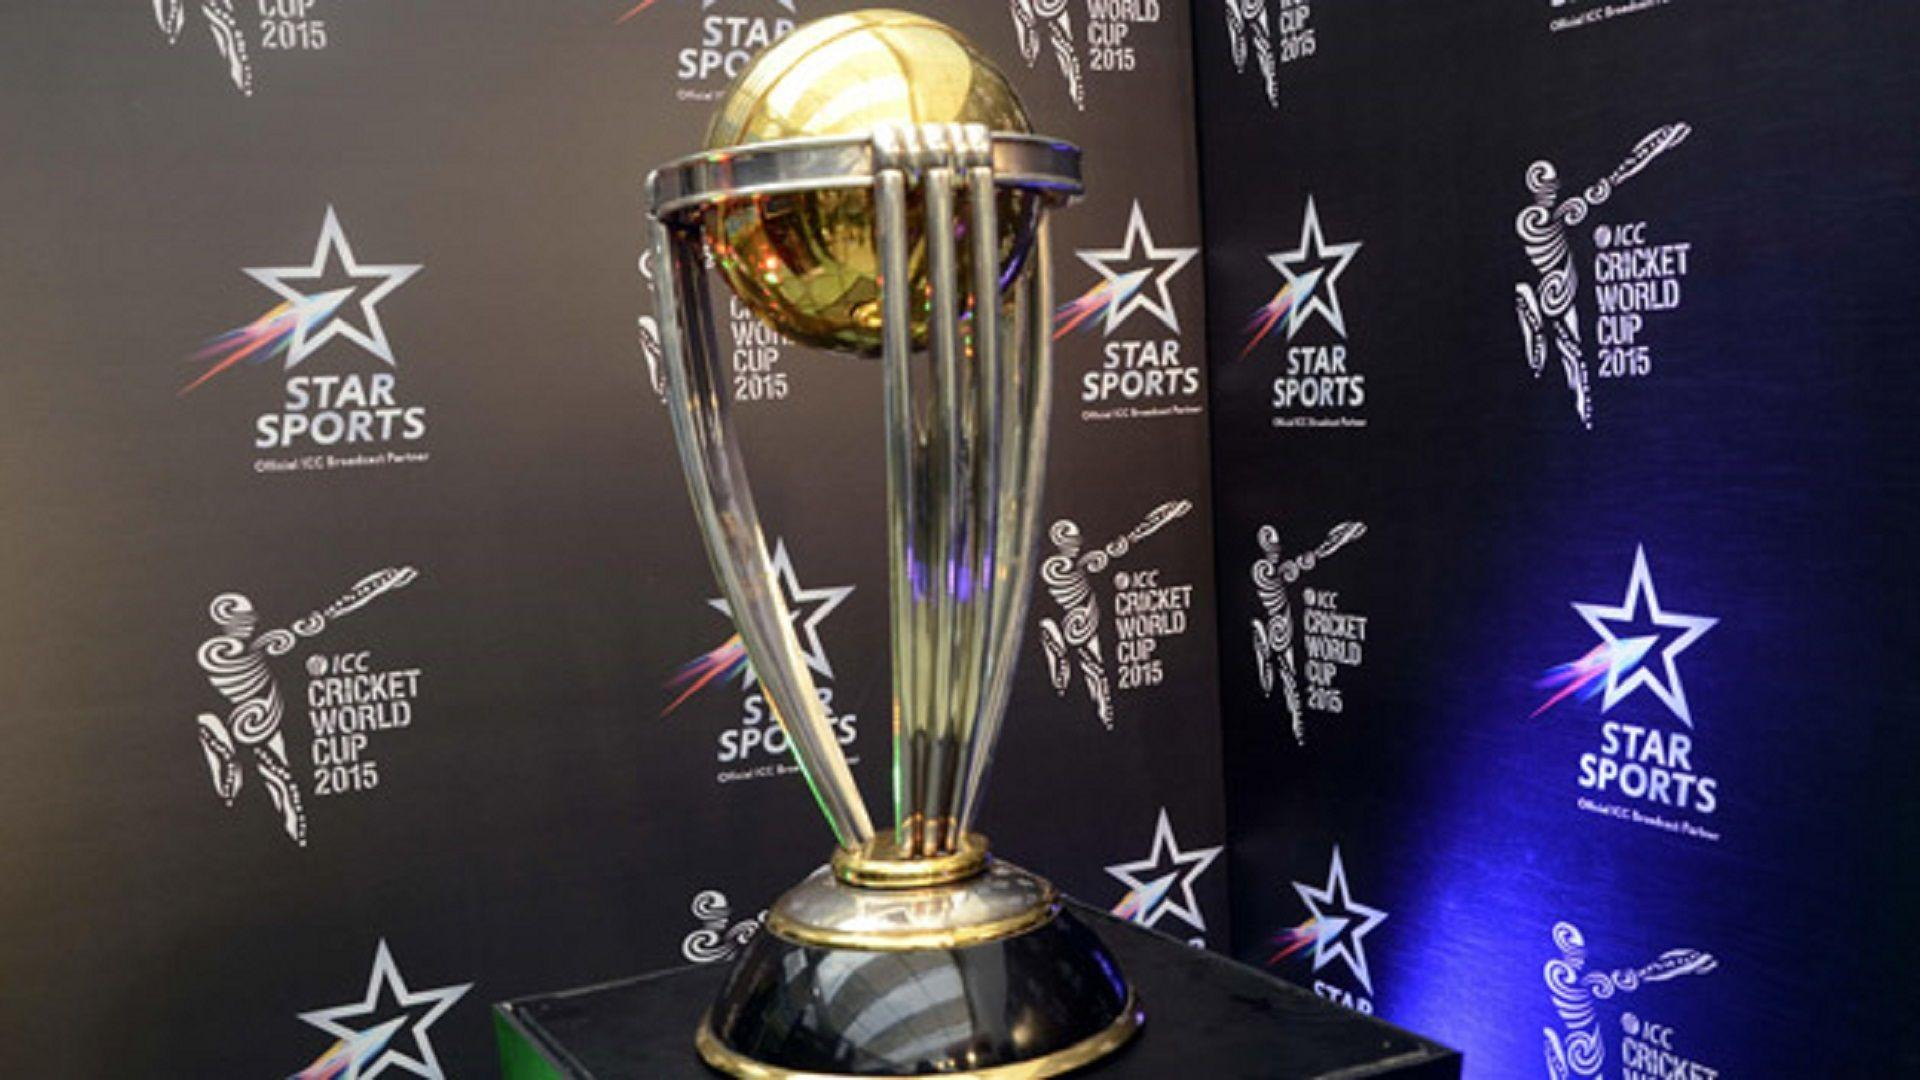 Icc Cricket World Cup Trophy Wallpaper Hd Free